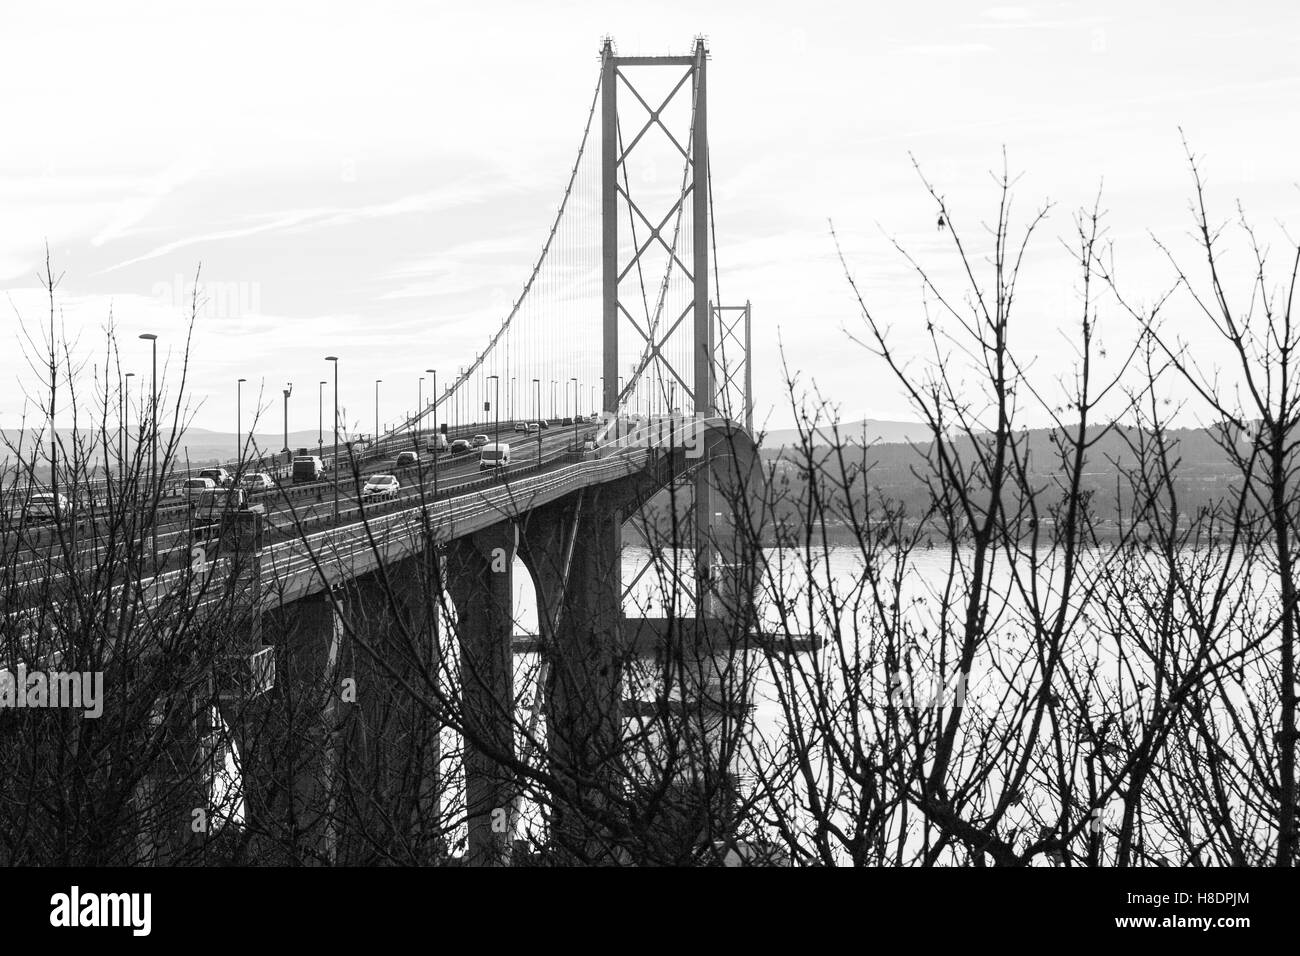 Queensferry, Edinburgh, Scotland, 11th, November, 2016. Forth Bridges.    The existing Forth Road bridge is still taking traffic while the second Road Bridge is nearing completion.  Phil Hutchinson/Alamy Live News Stock Photo